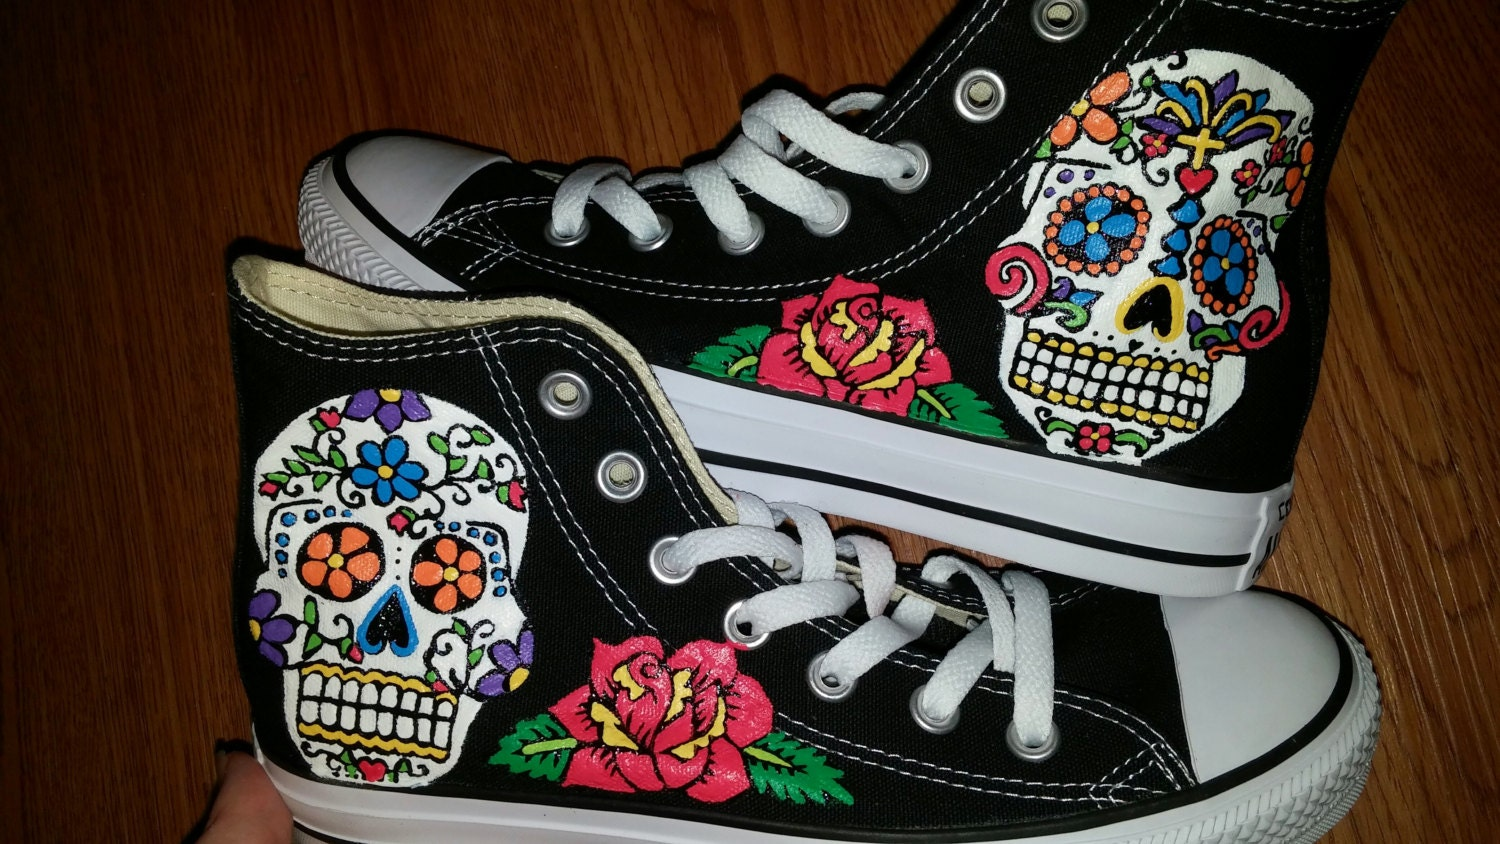 Sugar Skulls Hand Painted Sneakers - My Sugar Skulls